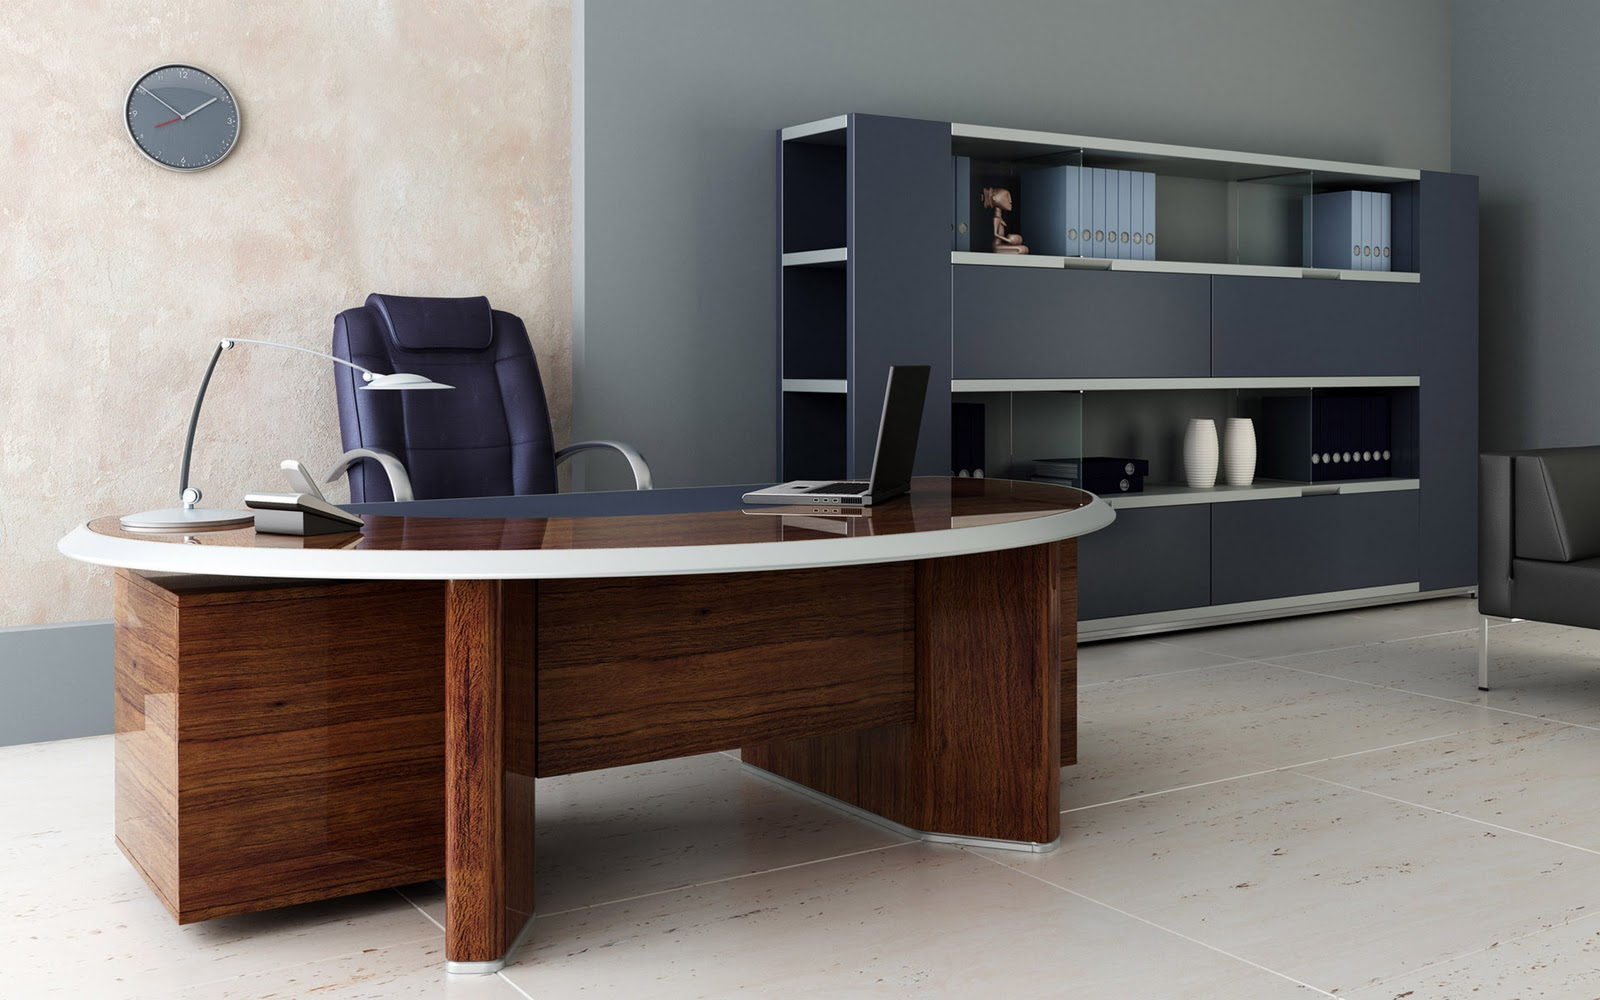 Superb Design Of The Brown Wooden Table Added With G Shelves And Grey Wall Office Areas Idas